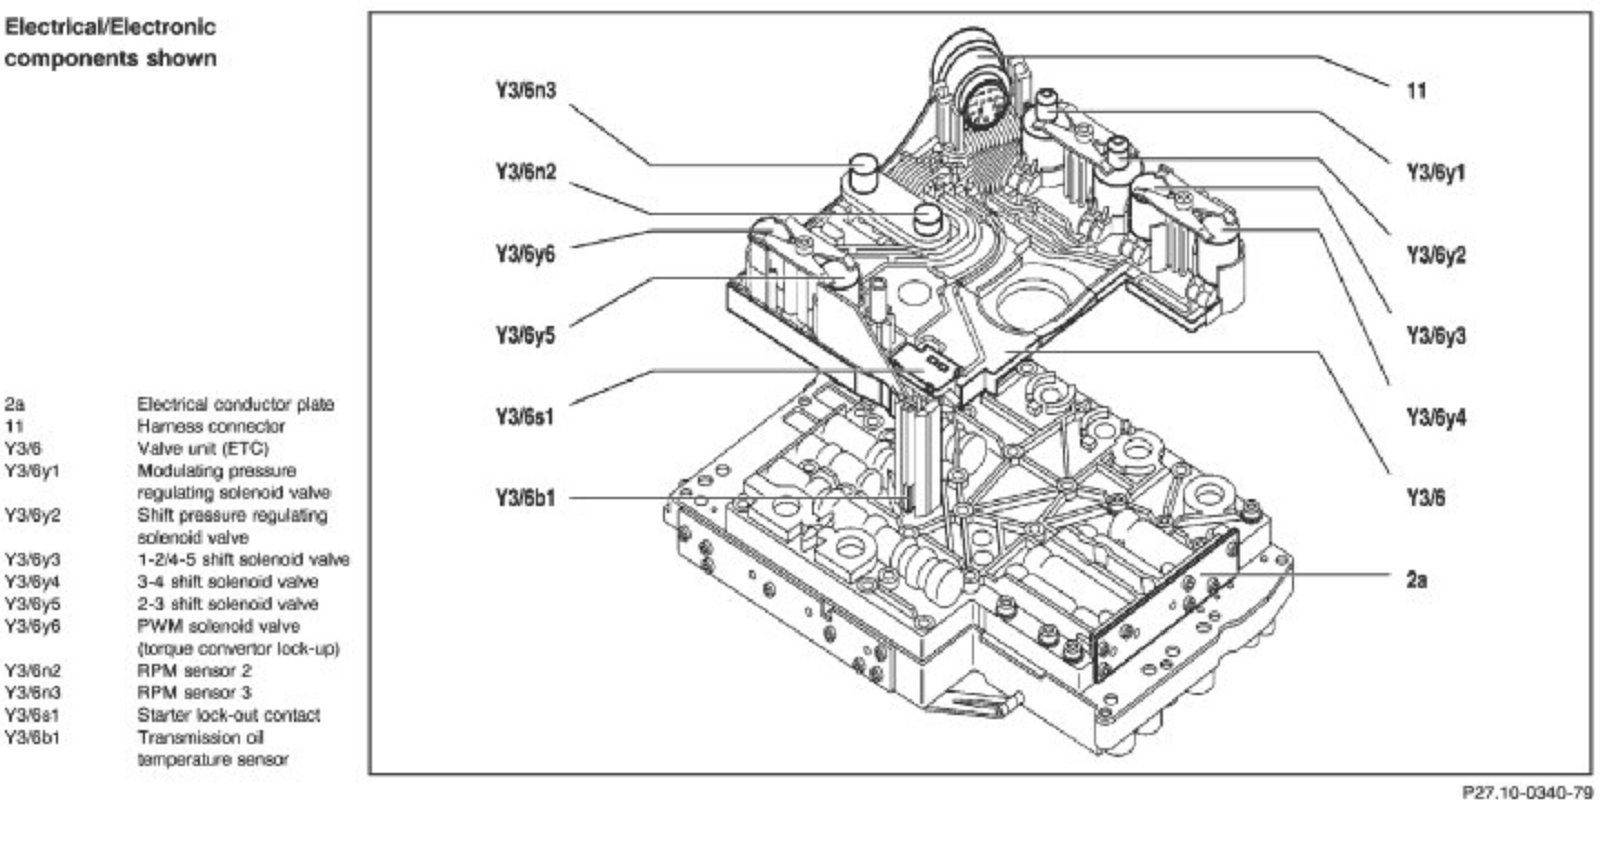 i have a 97 e320 mercedes with trouble codes p0715 turbine